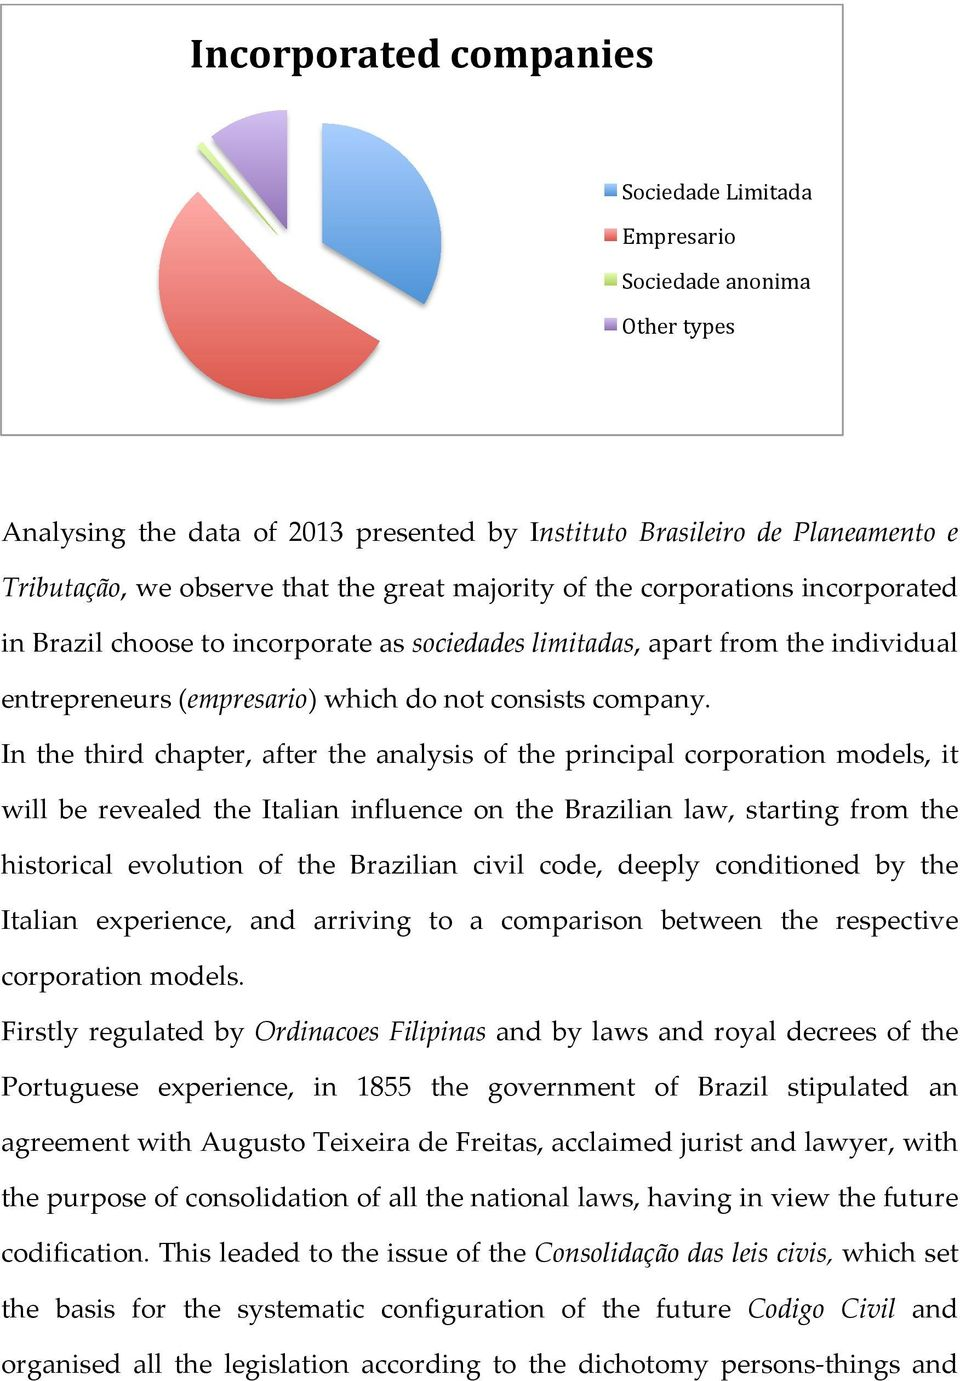 In the third chapter, after the analysis of the principal corporation models, it will be revealed the Italian influence on the Brazilian law, starting from the historical evolution of the Brazilian